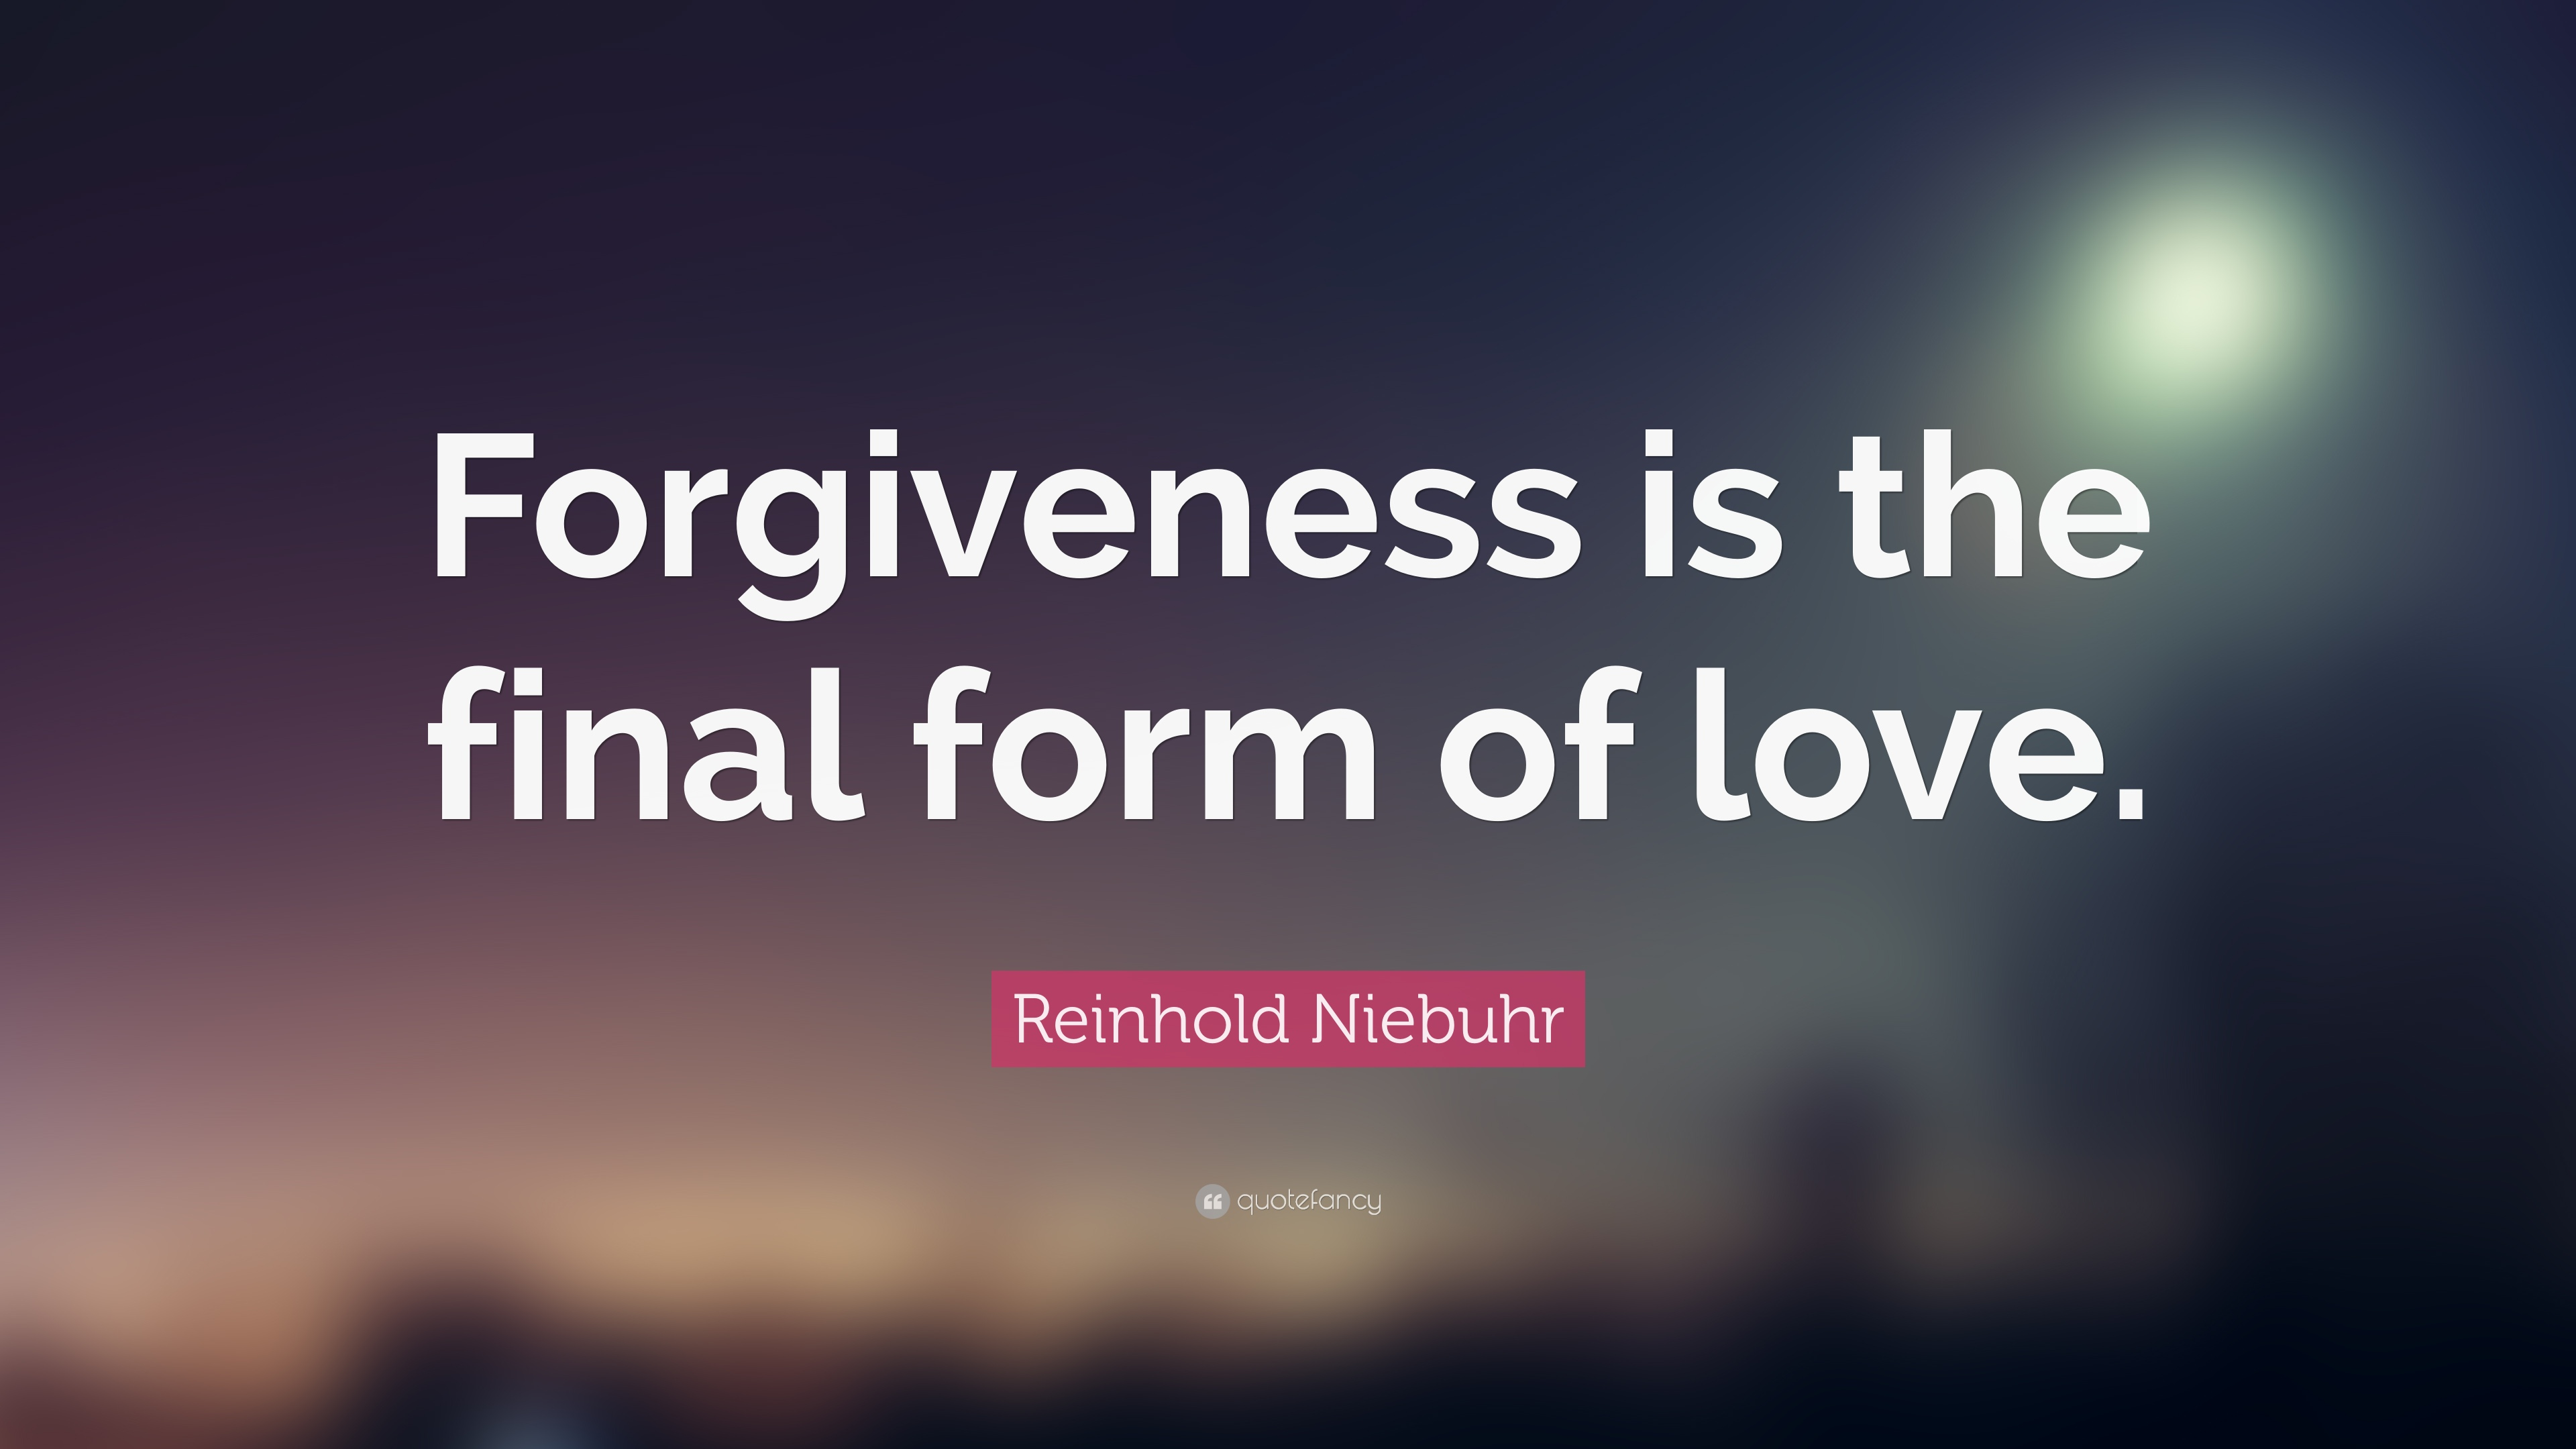 Love Forgiveness Quotes For Her Love And Forgiveness Quotes Beauteous Best 25 Forgiveness Love